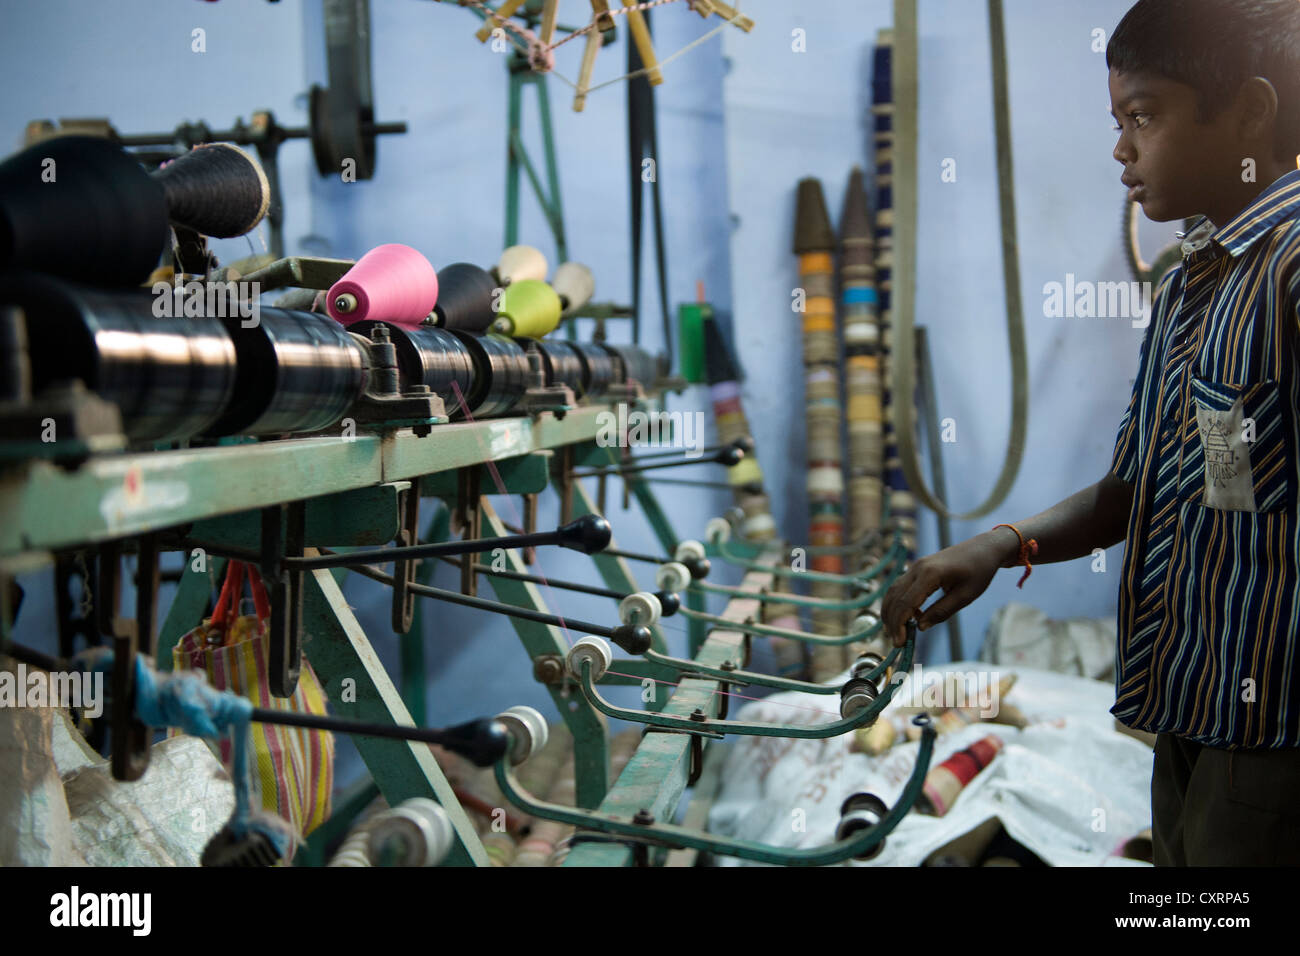 Child labourer, 11 years, operating machinery in a mosquito net factory, Karur, Tamil Nadu, South India, India, - Stock Image